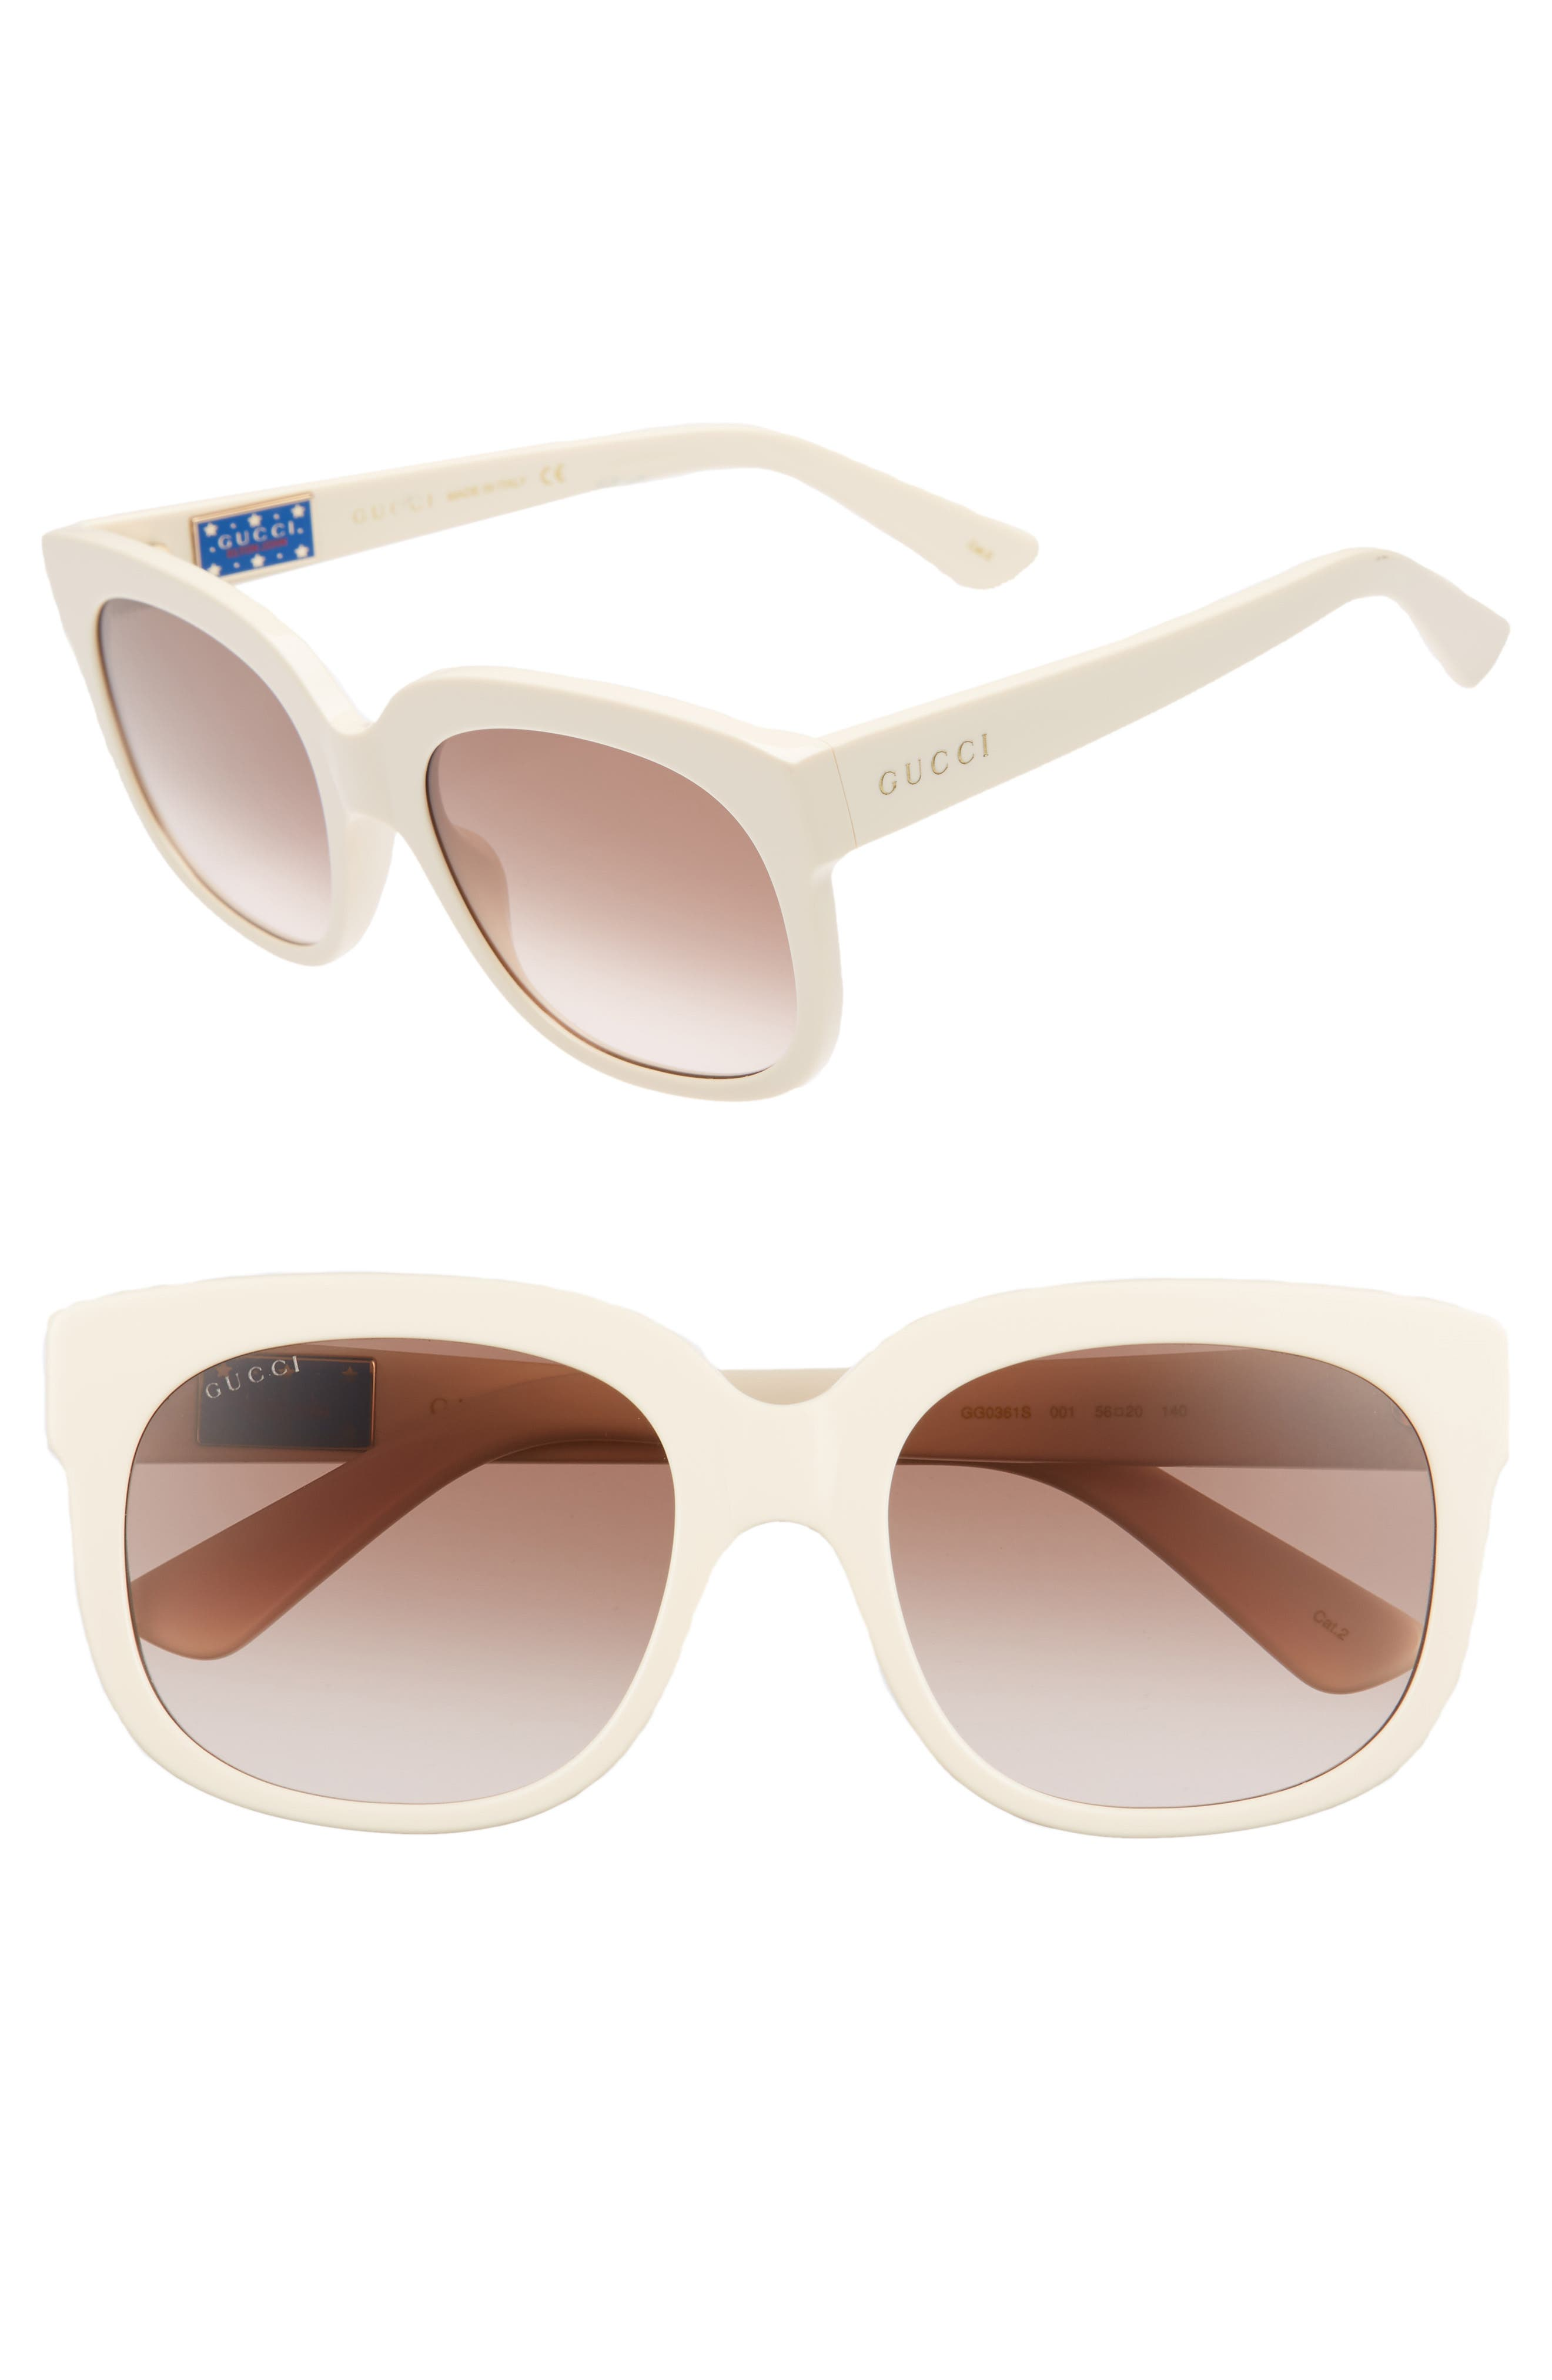 56mm Gradient Cat Eye Sunglasses,                             Main thumbnail 1, color,                             IVORY/ BROWN/ PINK